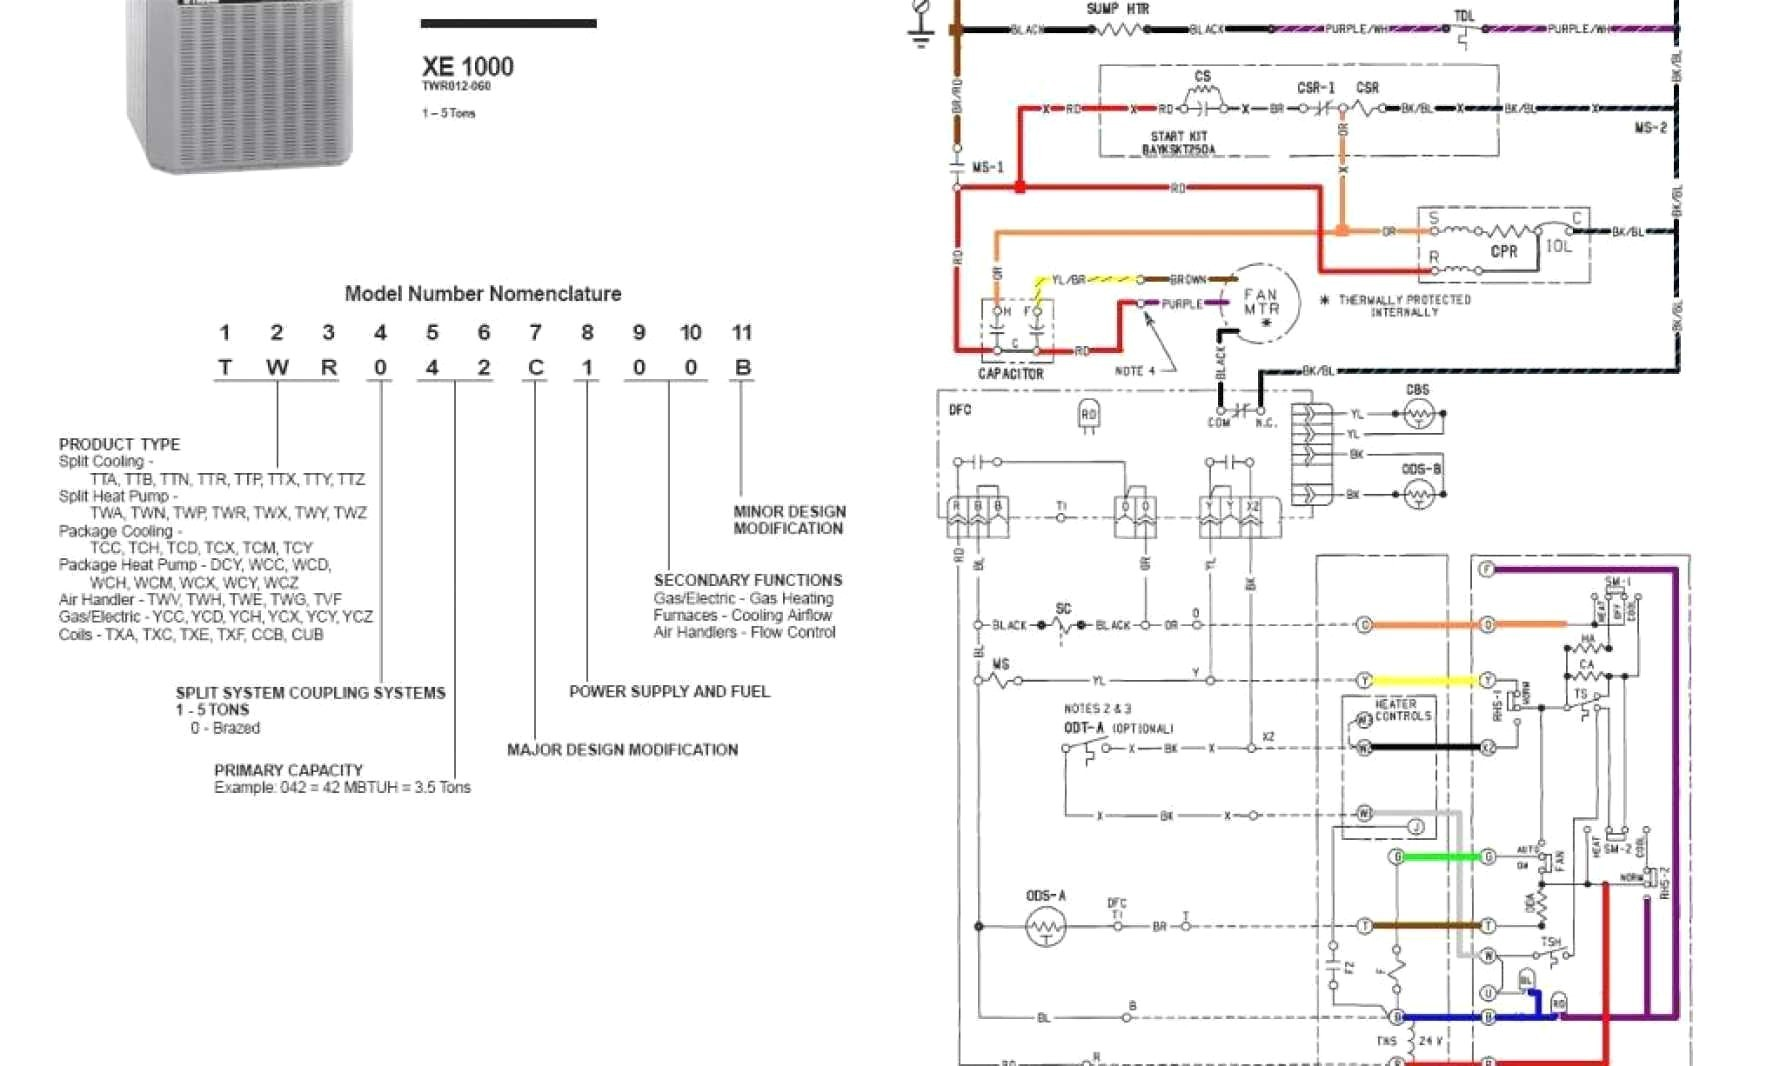 Trane thermostat Wiring Diagram New Wiring Diagram for Trane thermostat Wiring Diagram Sample and Guide